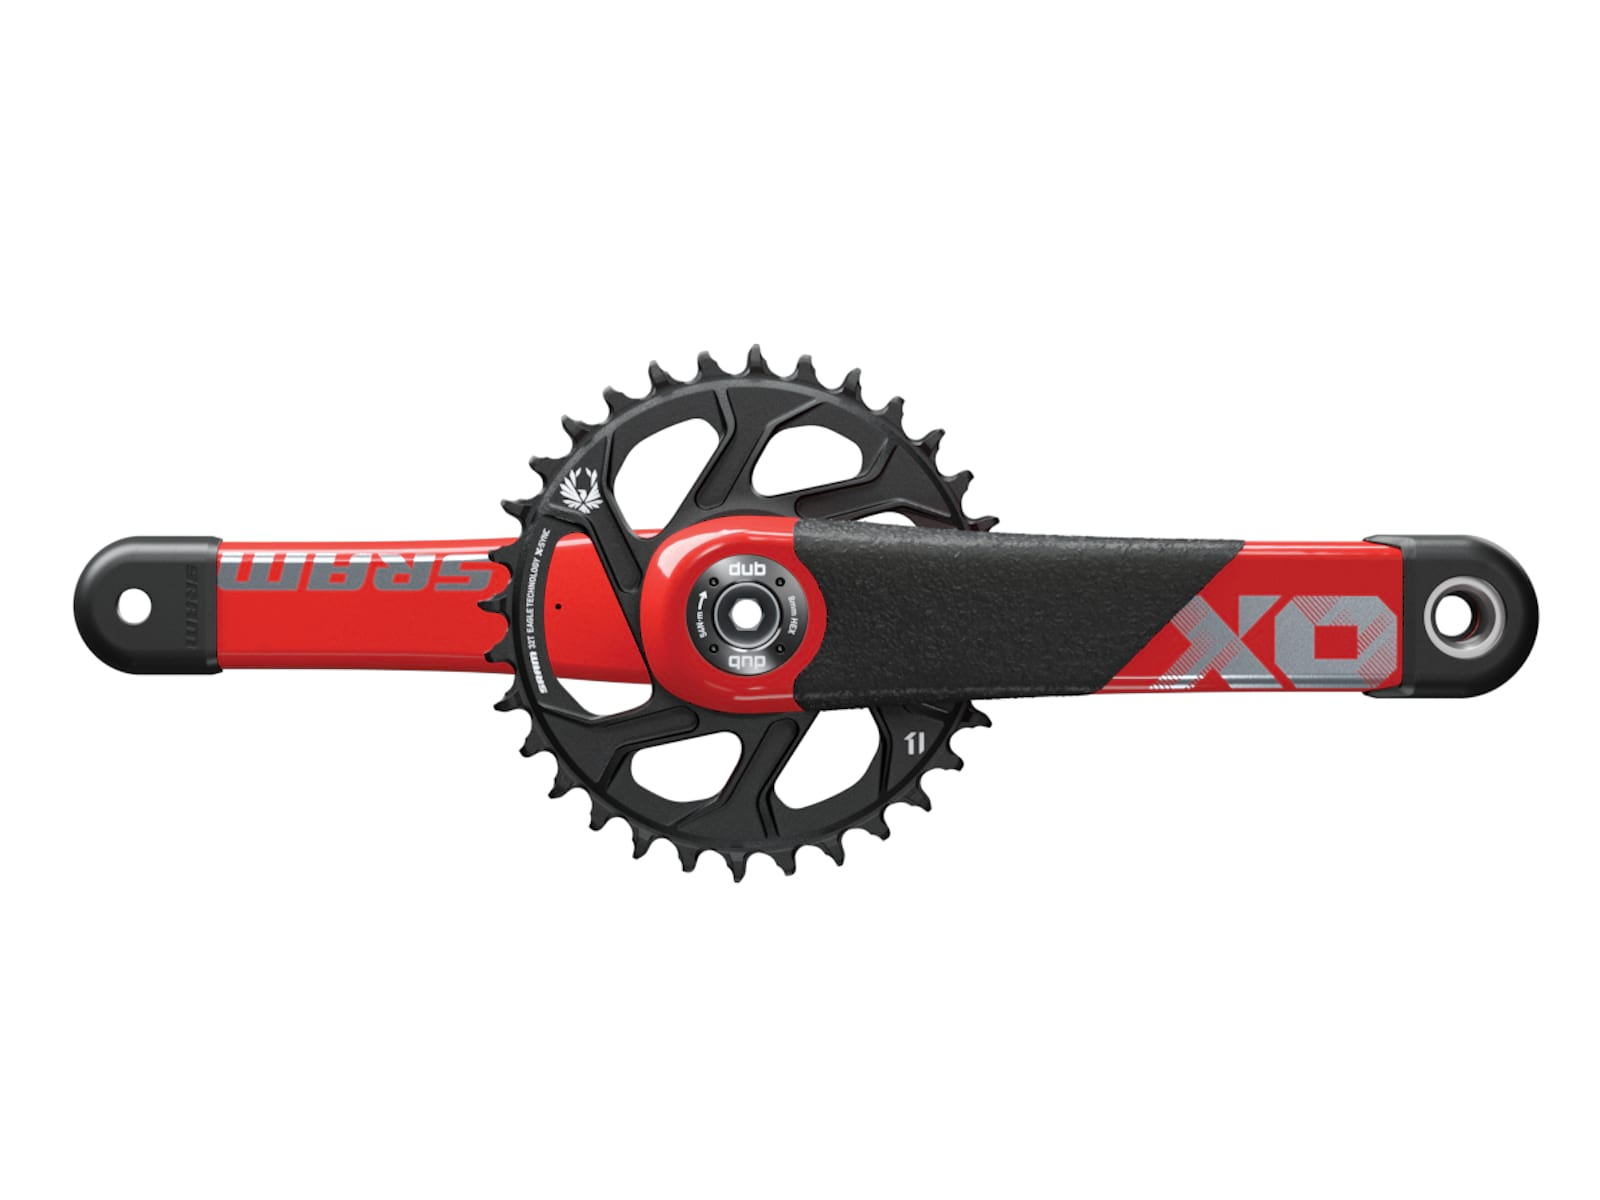 New XO1 cranks with added protection.